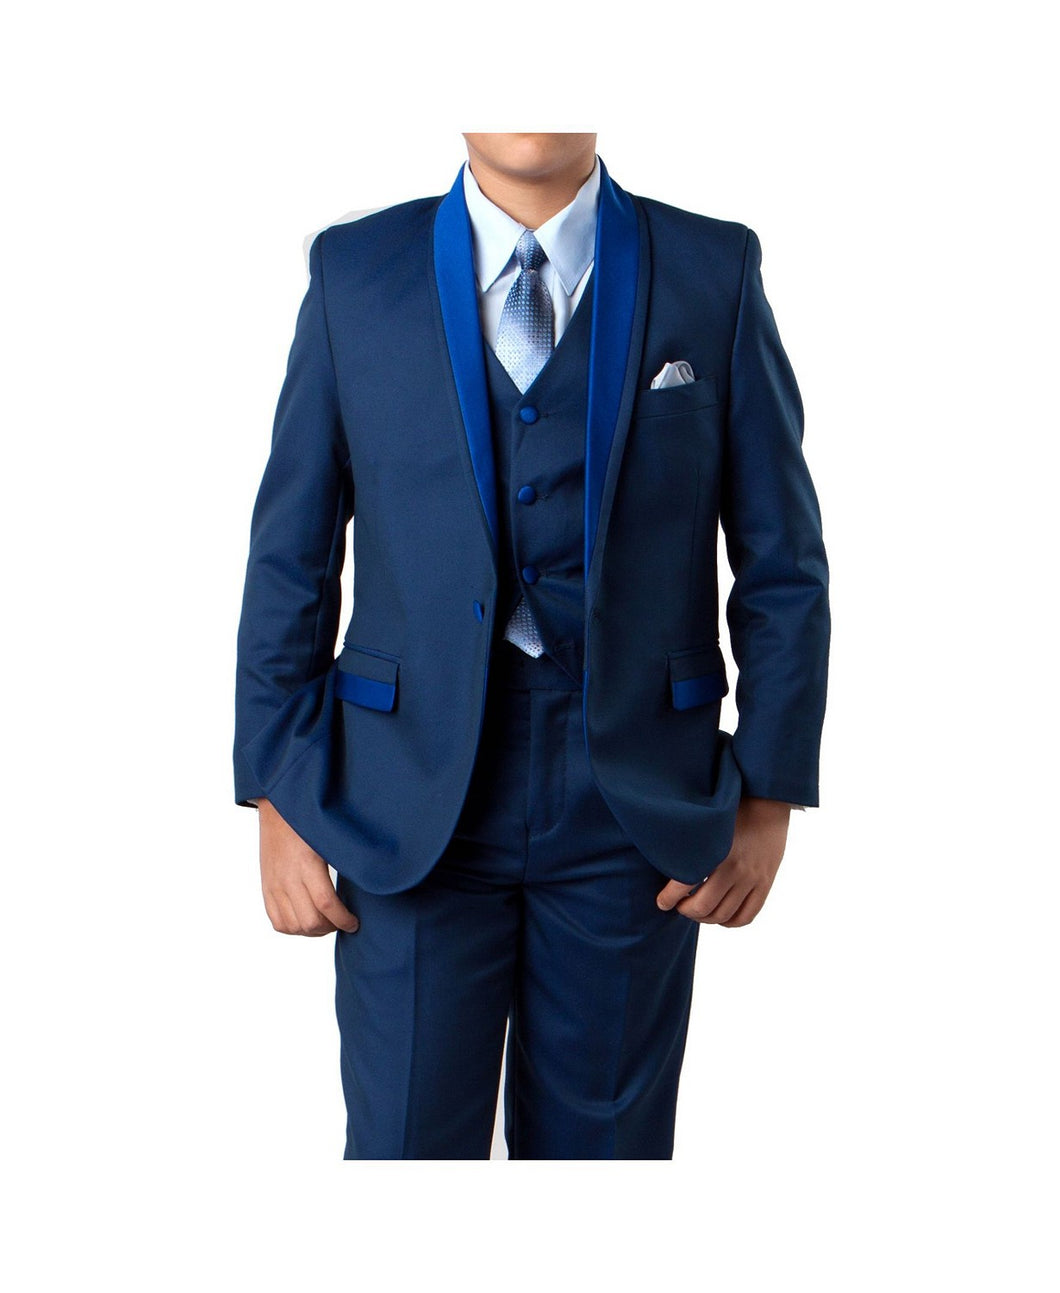 Braveman Satin Collar Little Boy's Suit  3 Piece With Shirt And Tie SKU: 008346 Color - Royal Blue Size- 5 Small